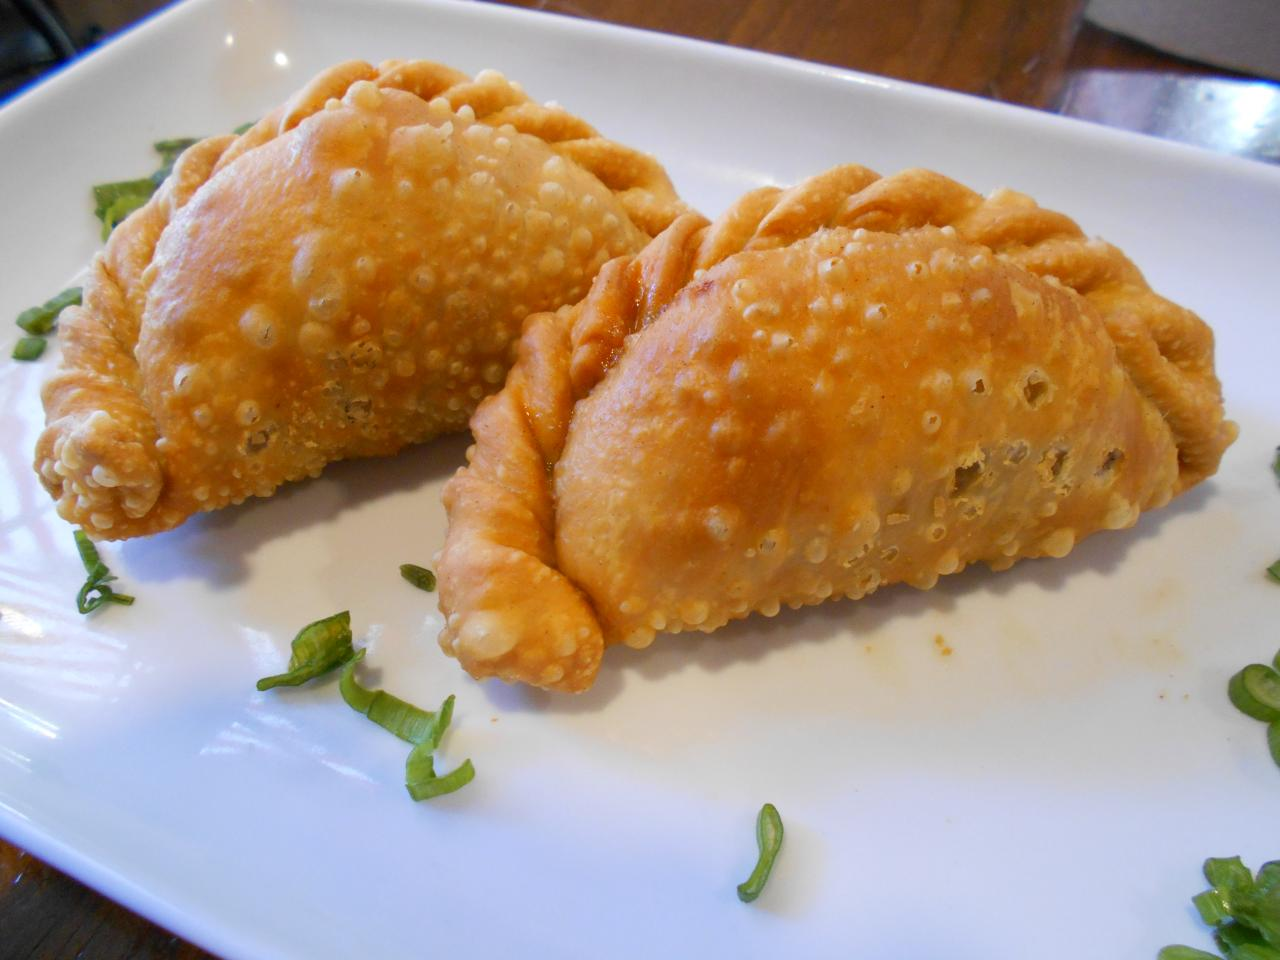 The empanadas had a succulent meat filling